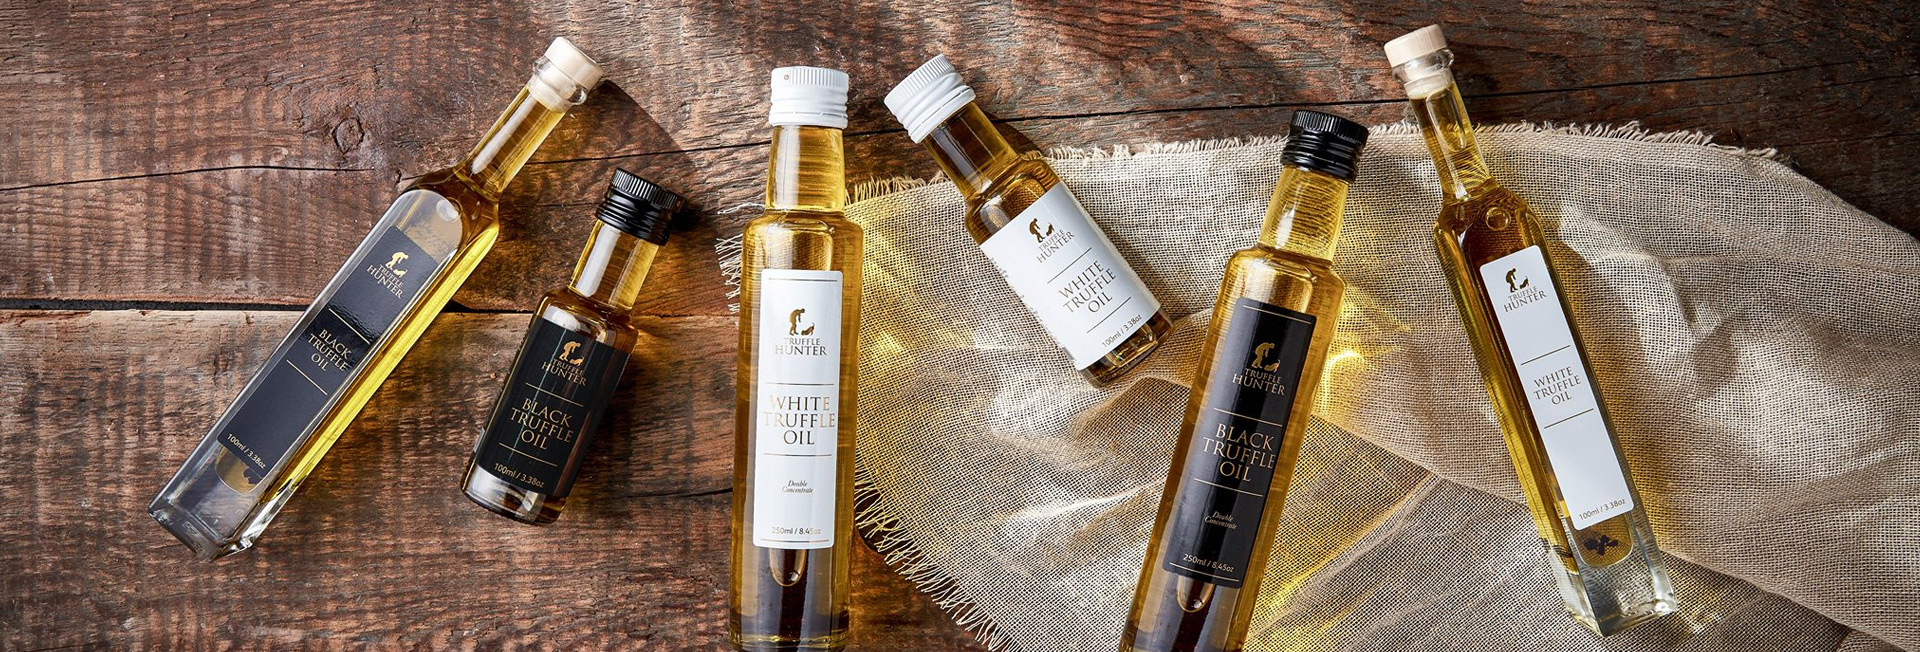 Homepage - Truffle Oils & Vinegar